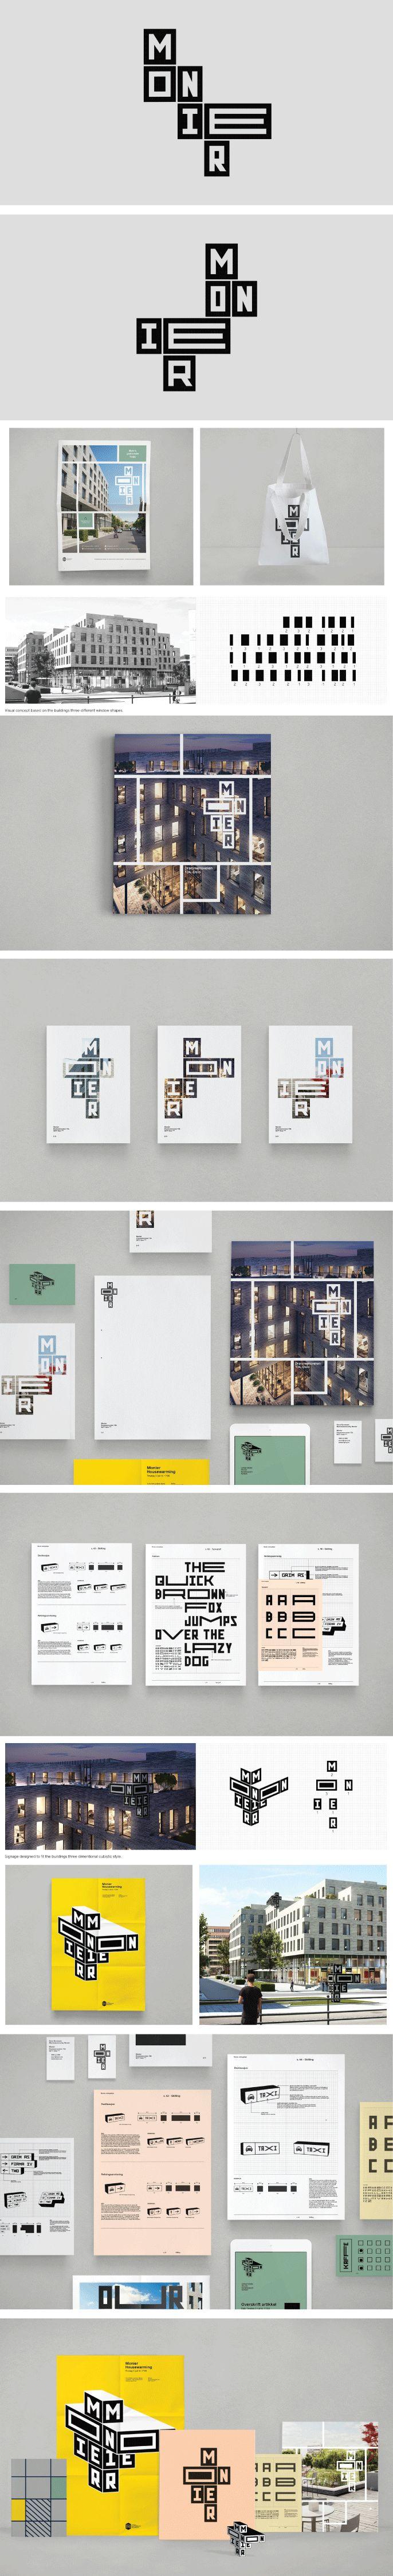 Bleed – Visual identity for Monier, an office building in Oslo